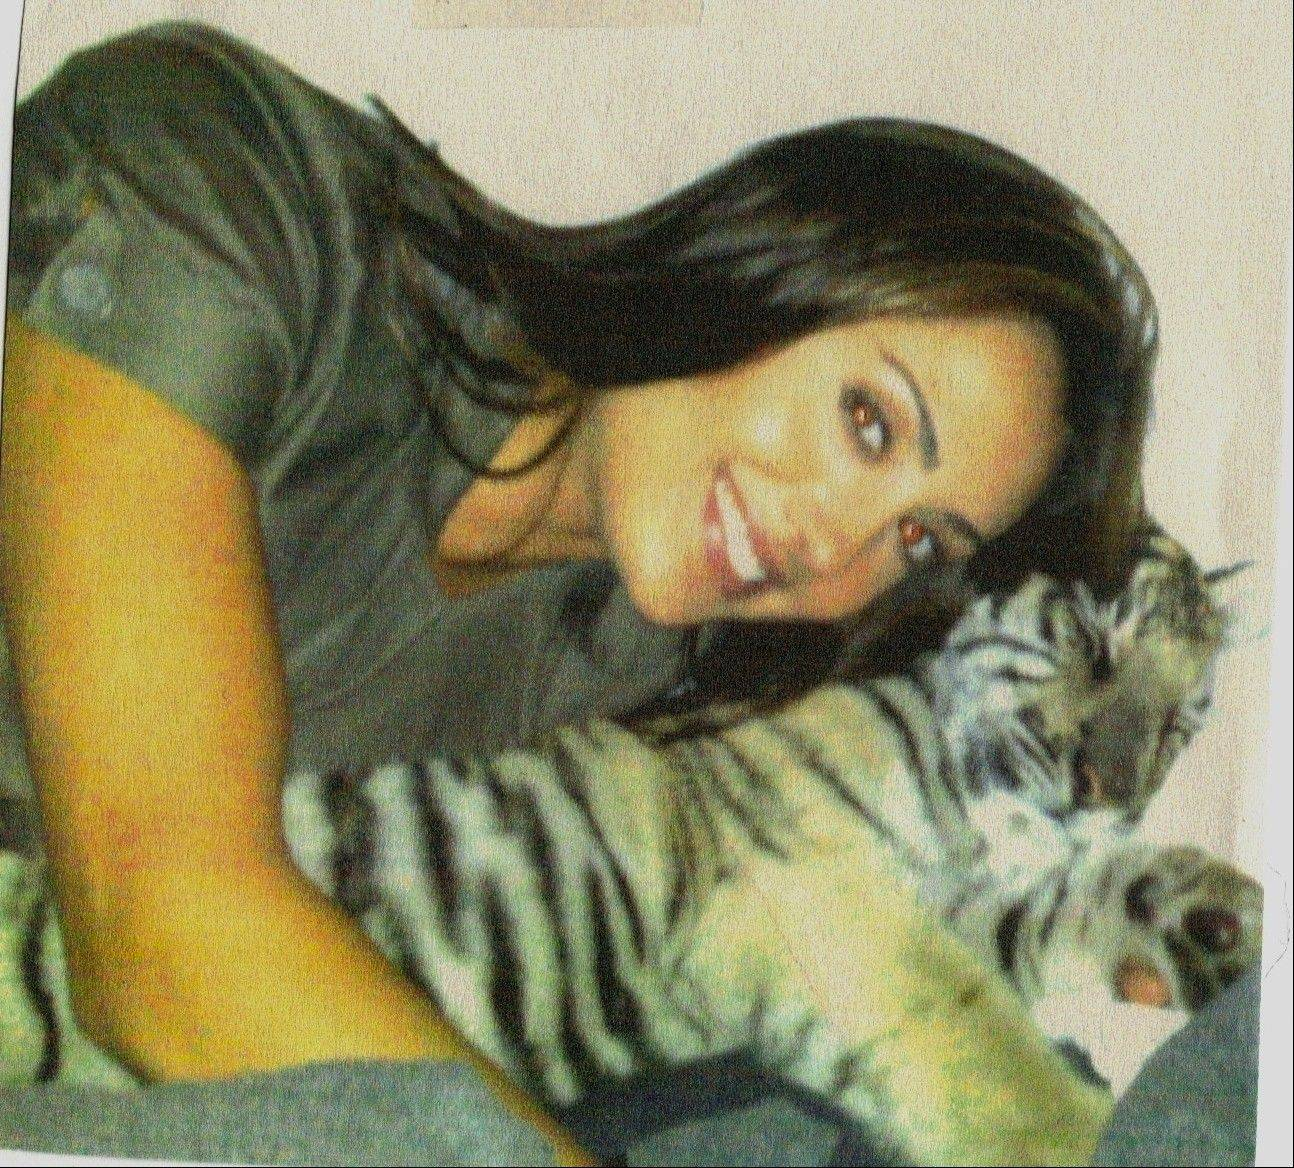 Model, actress and animal rights advocate Katie Cleary, of Glenview, poses with one of her beloved cats.